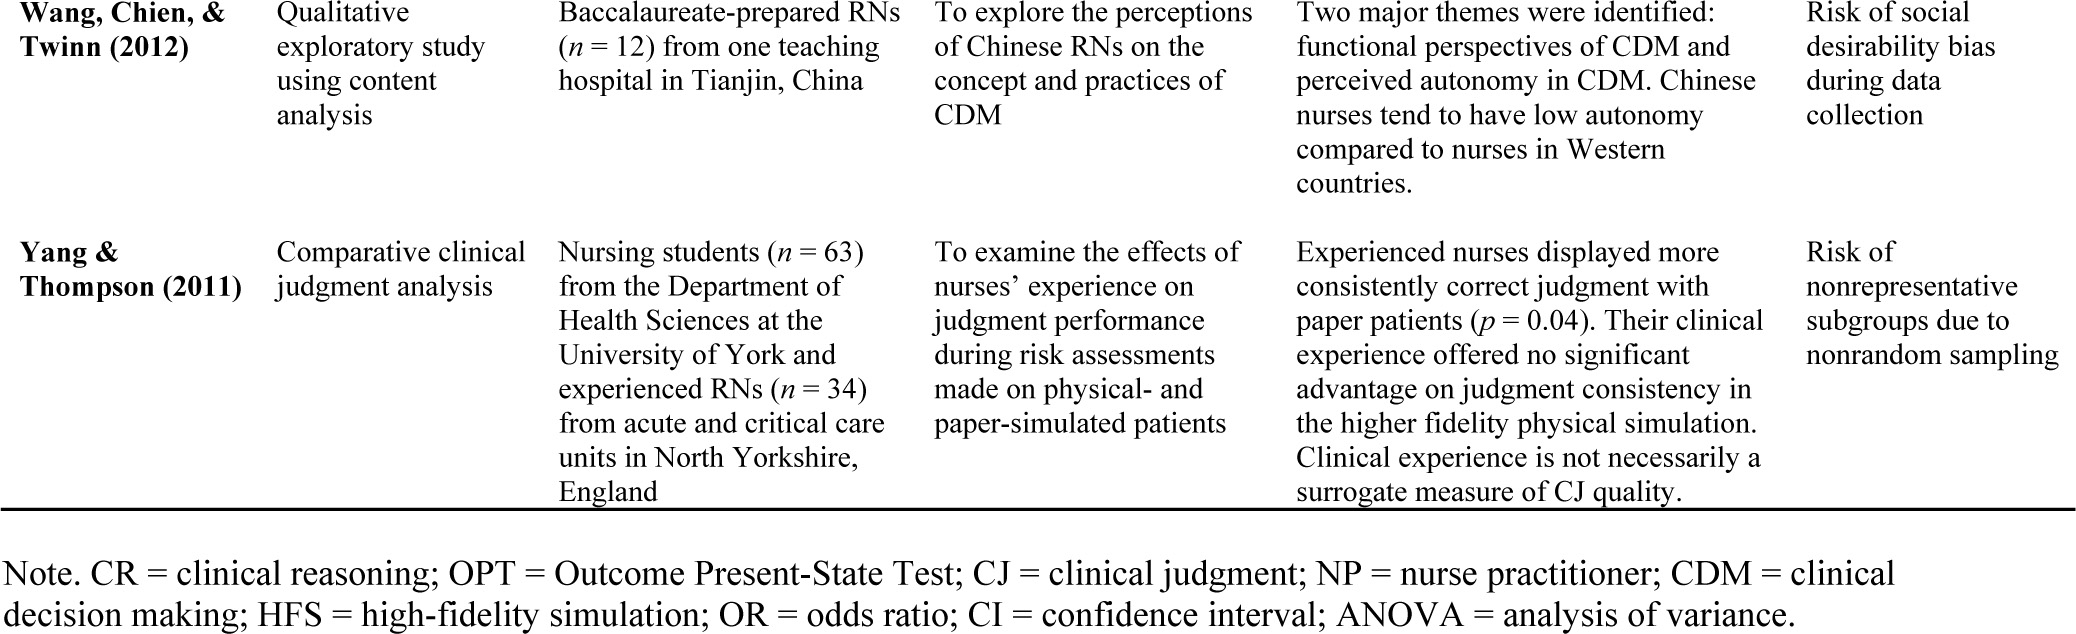 relationship between critical thinking and clinical decision making in nursing students